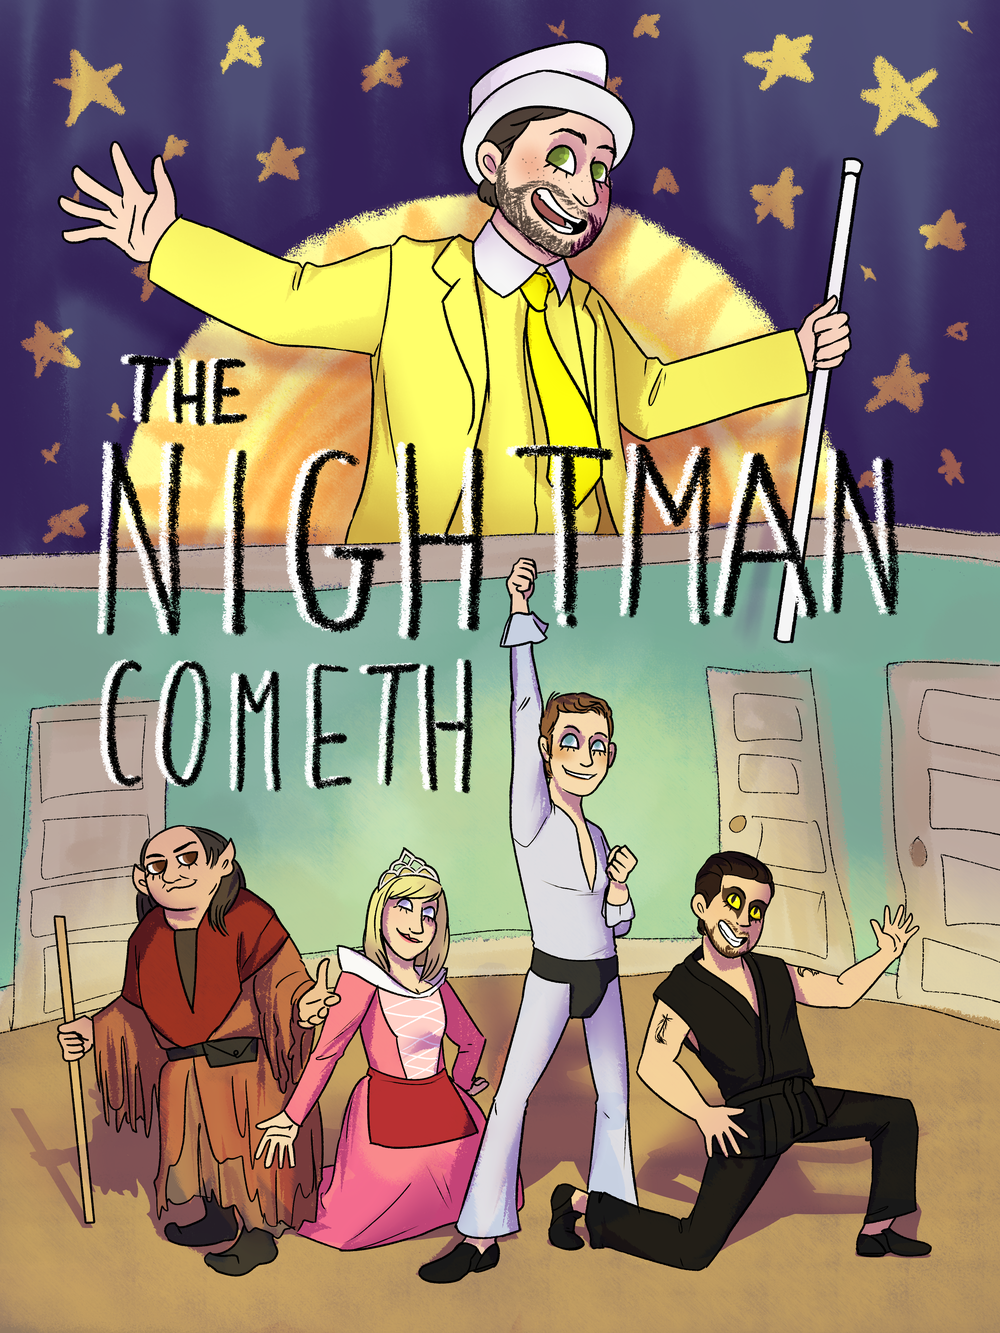 nightman poster v2 txt1.png